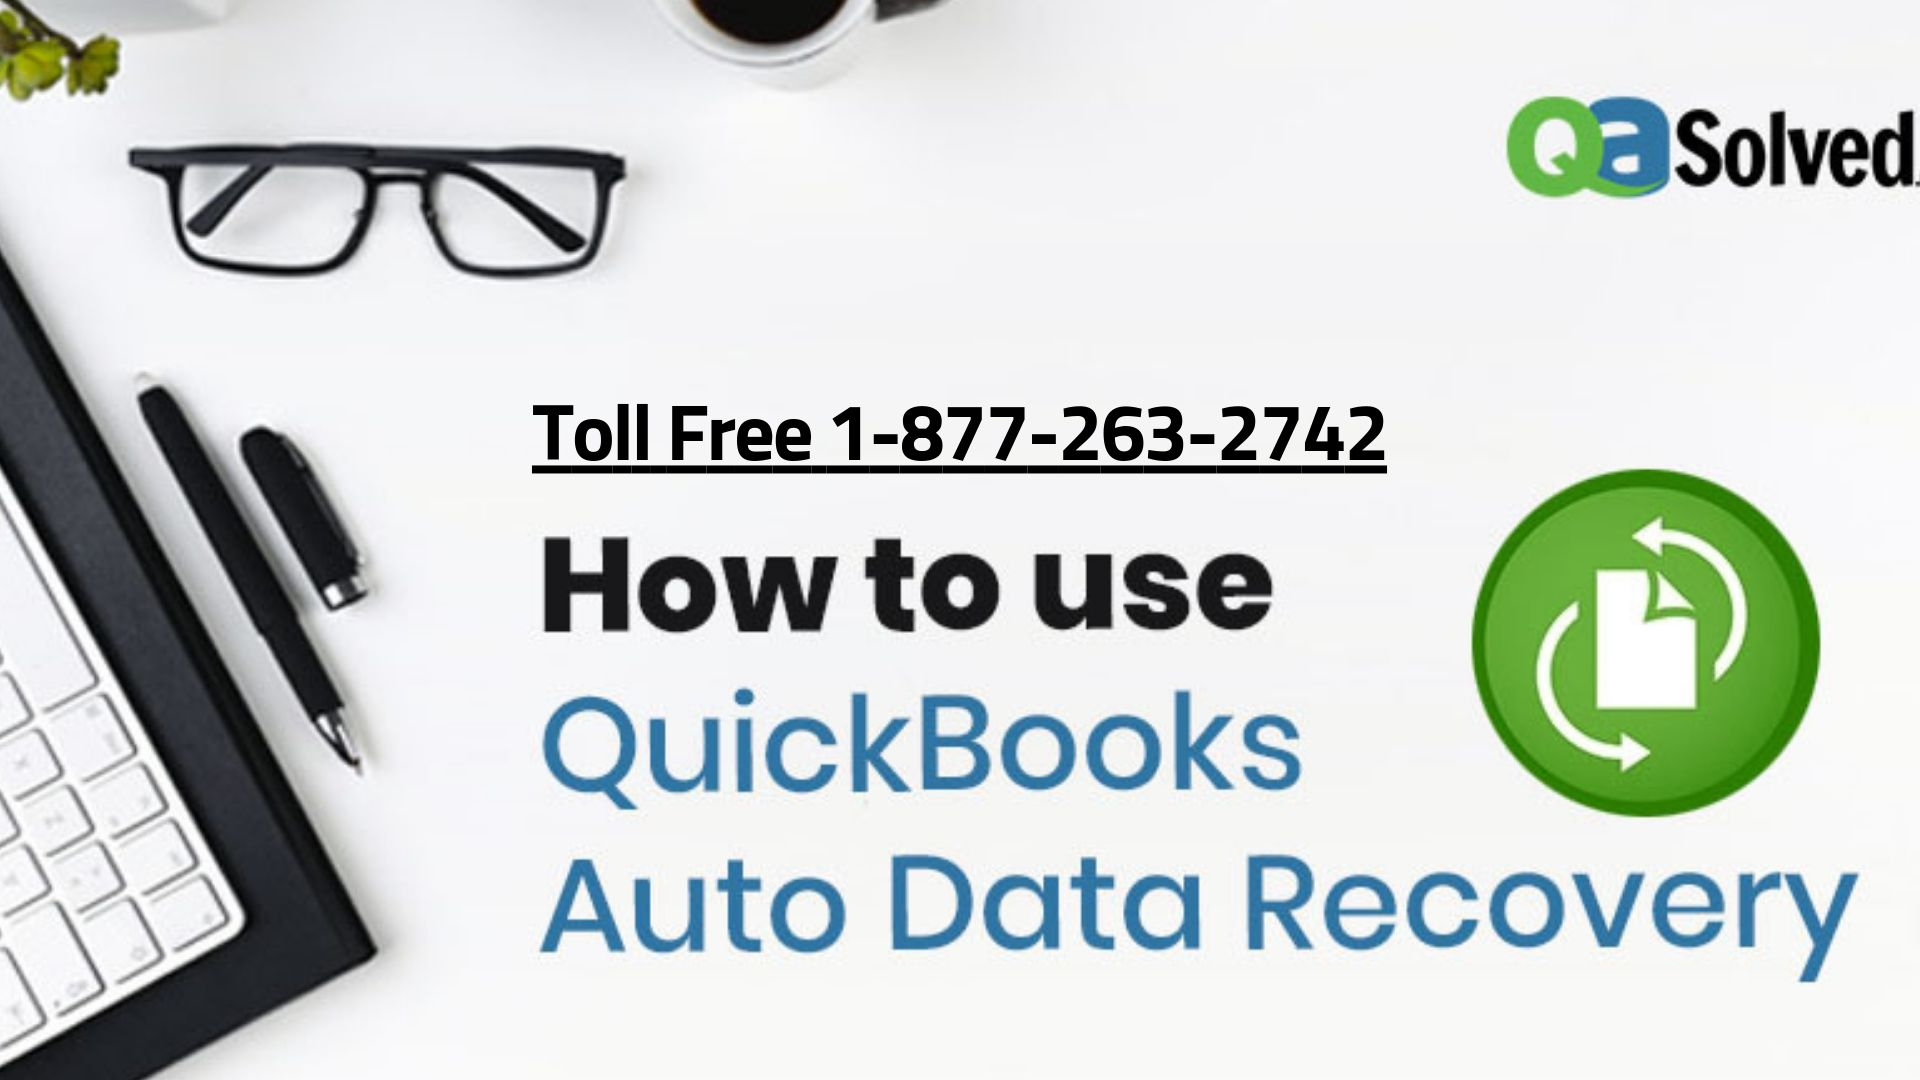 QuickBooks Auto Data Recovery is a tool that can recover all lost